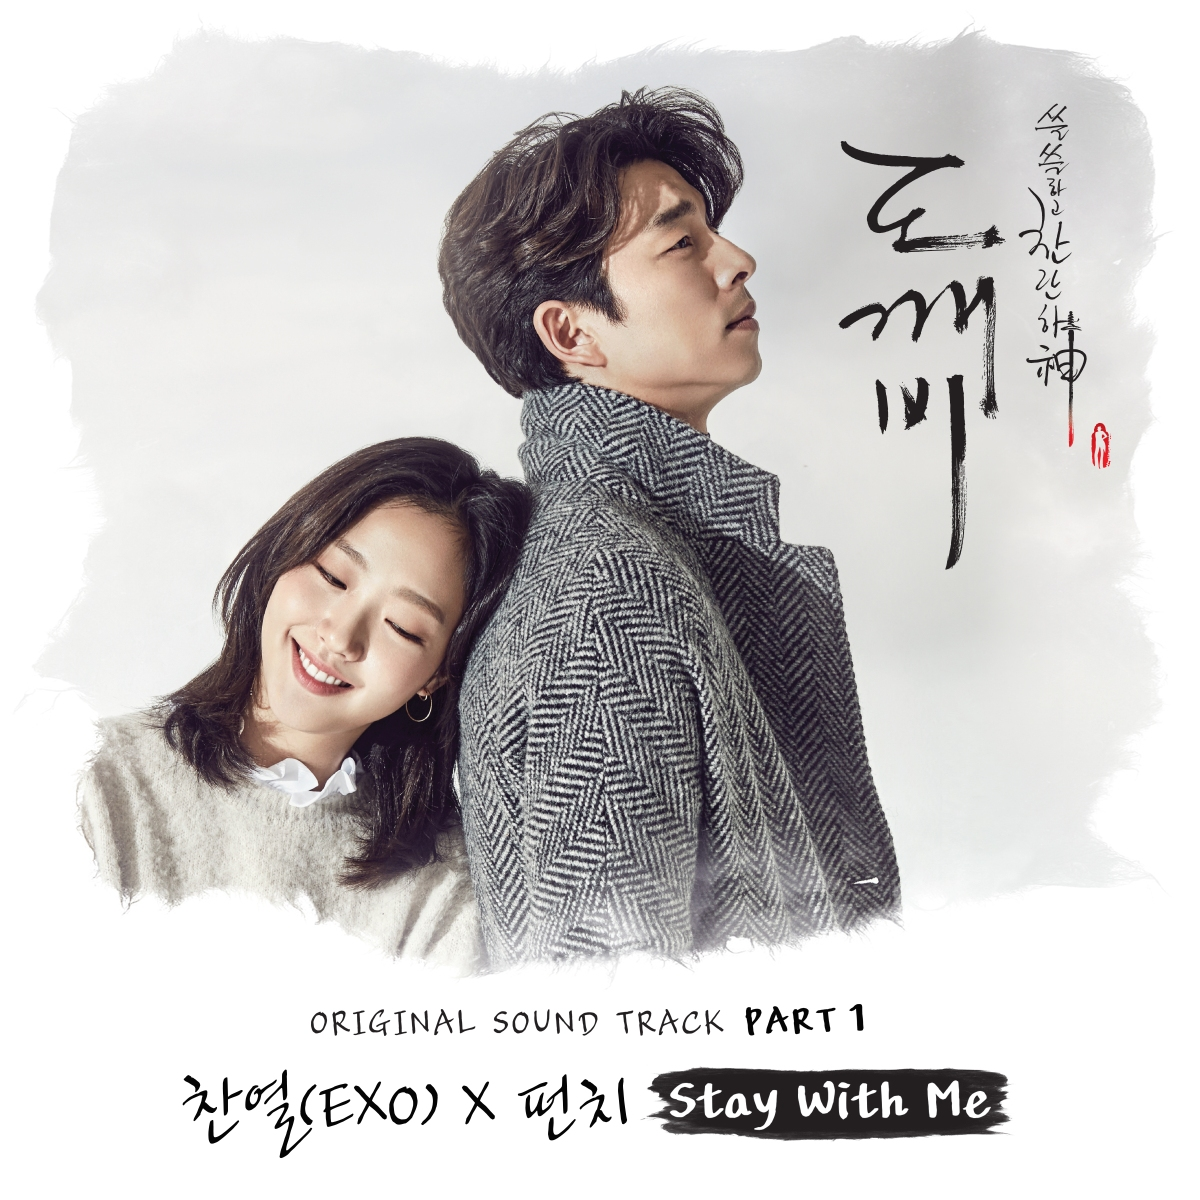 Chanyeol (EXO) & Punch - Stay with me 2016 (Goblin OST)